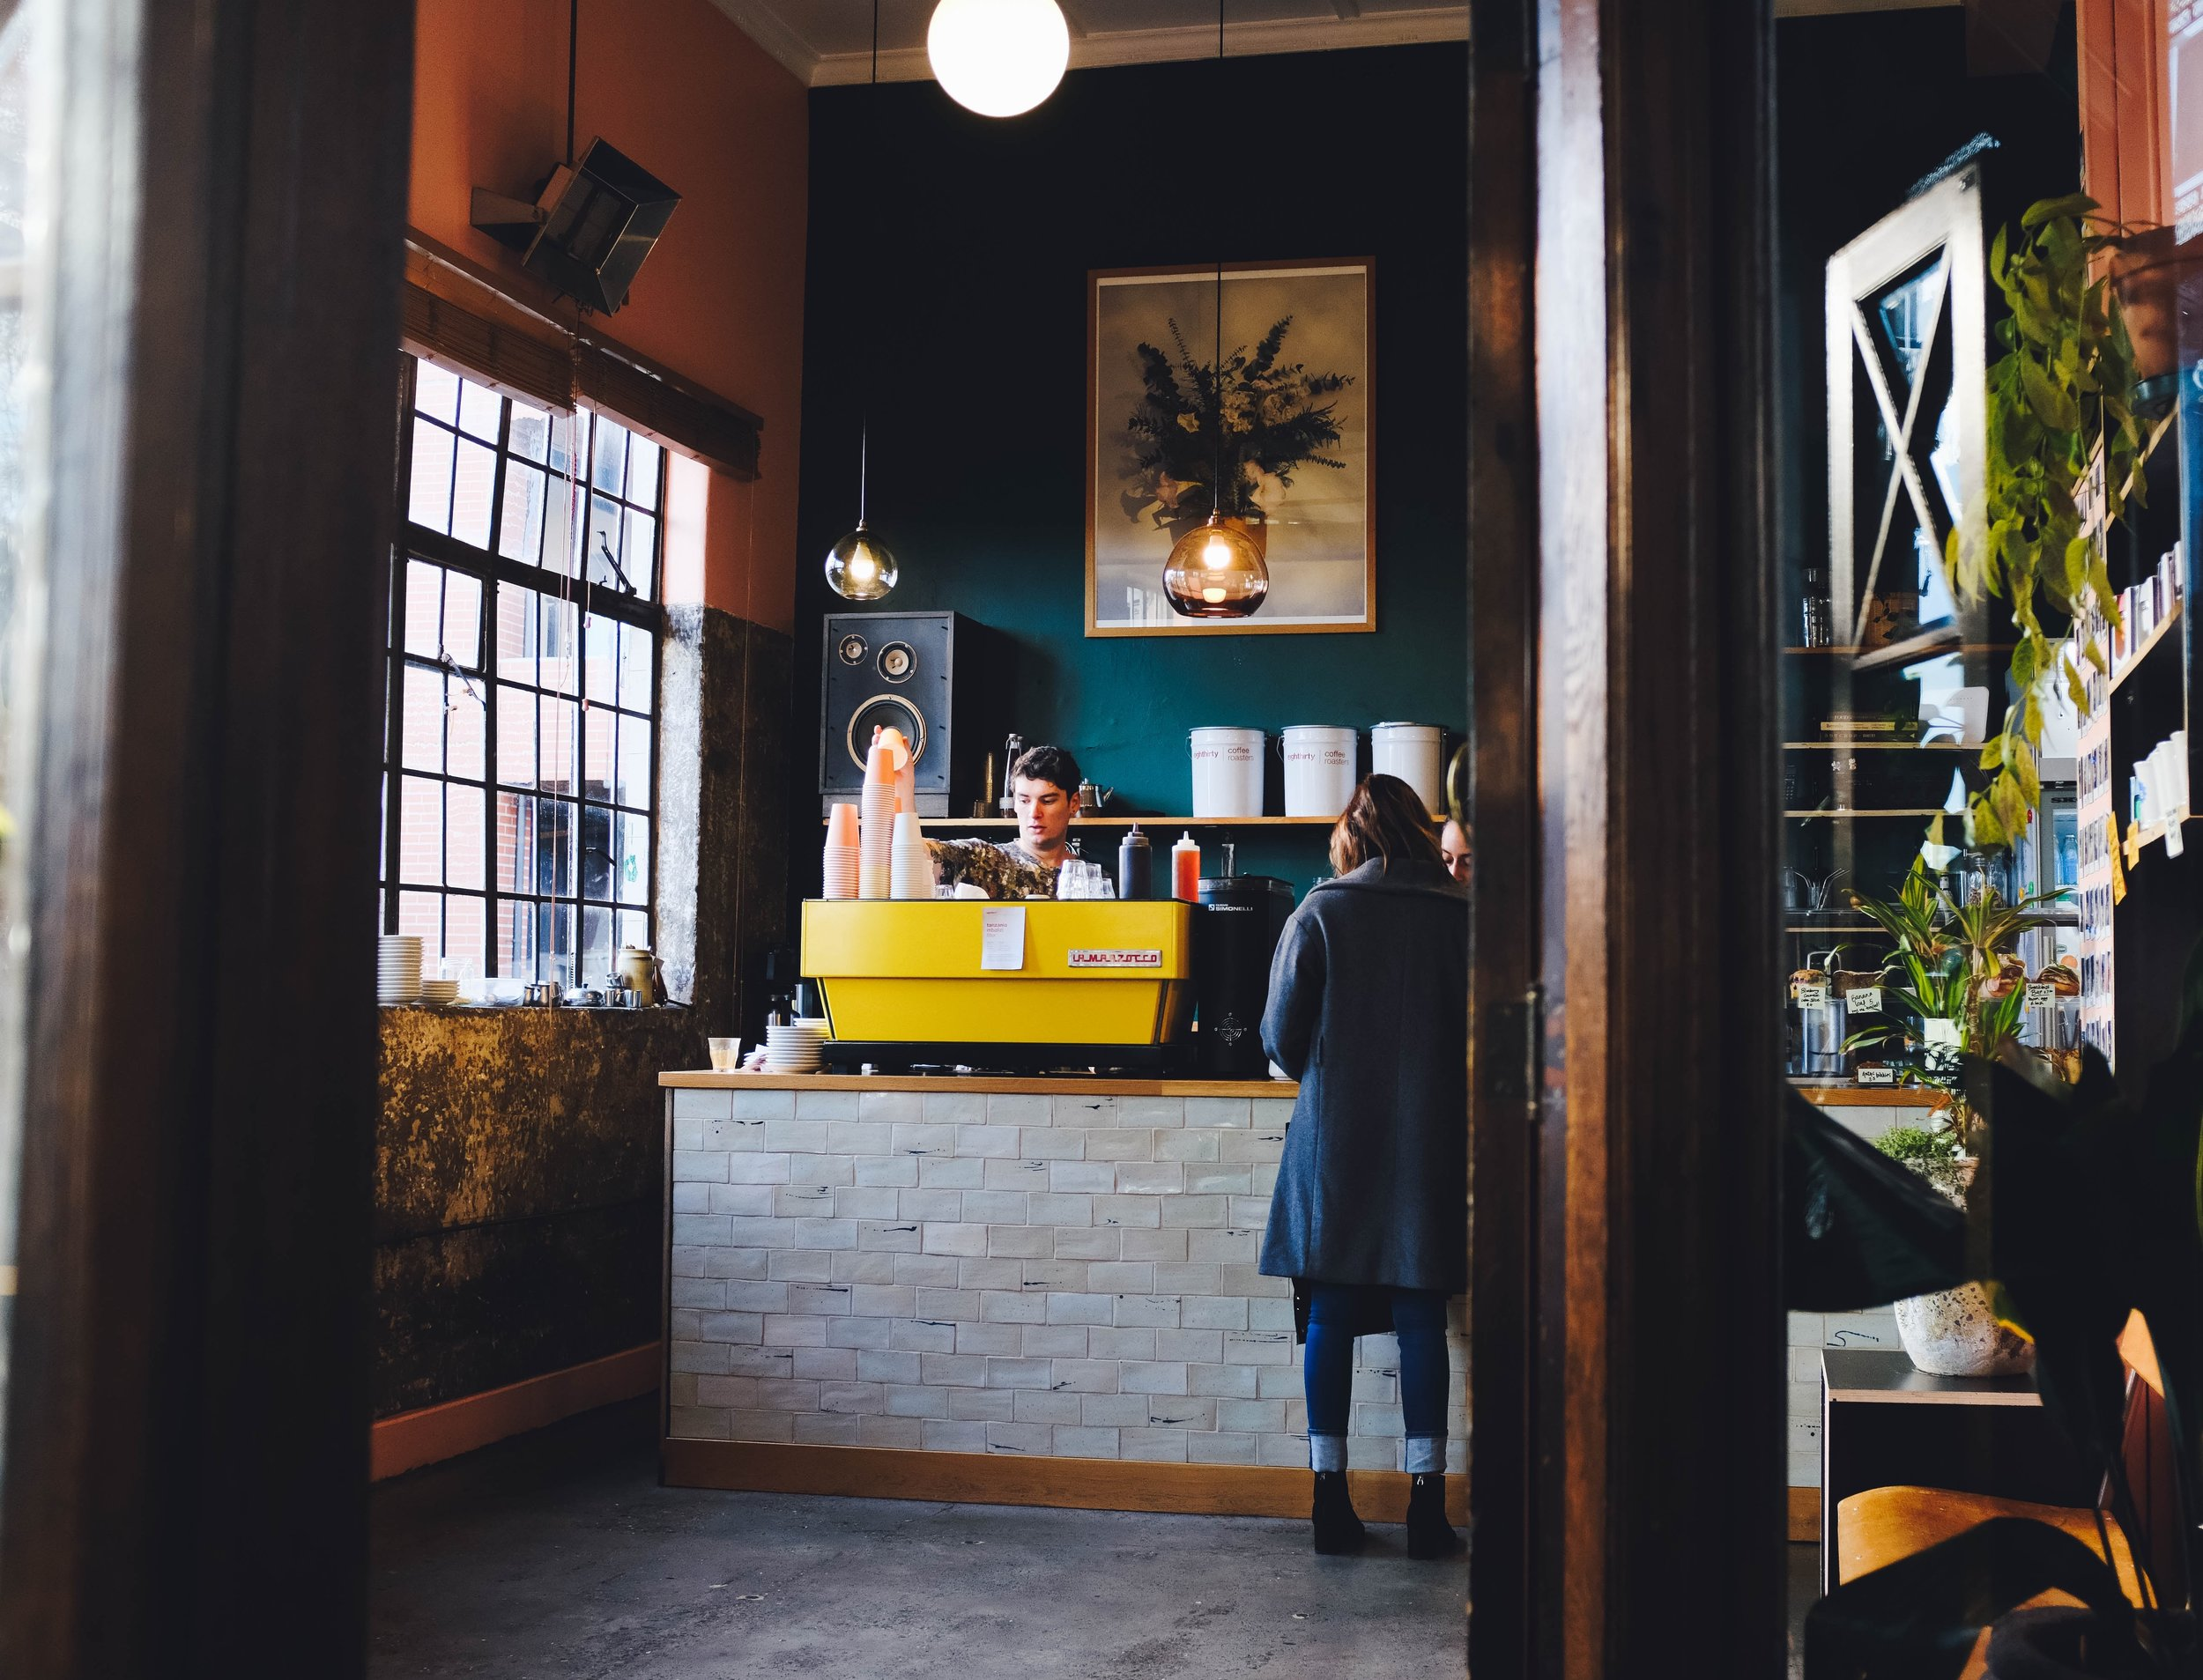 the supper club - The side project was founded on a few simple staples, namely great food, great conversation and great coffee. To ensure this tradition lives on we curate a list of venues in each city that we suggest to our members.Check out the spots